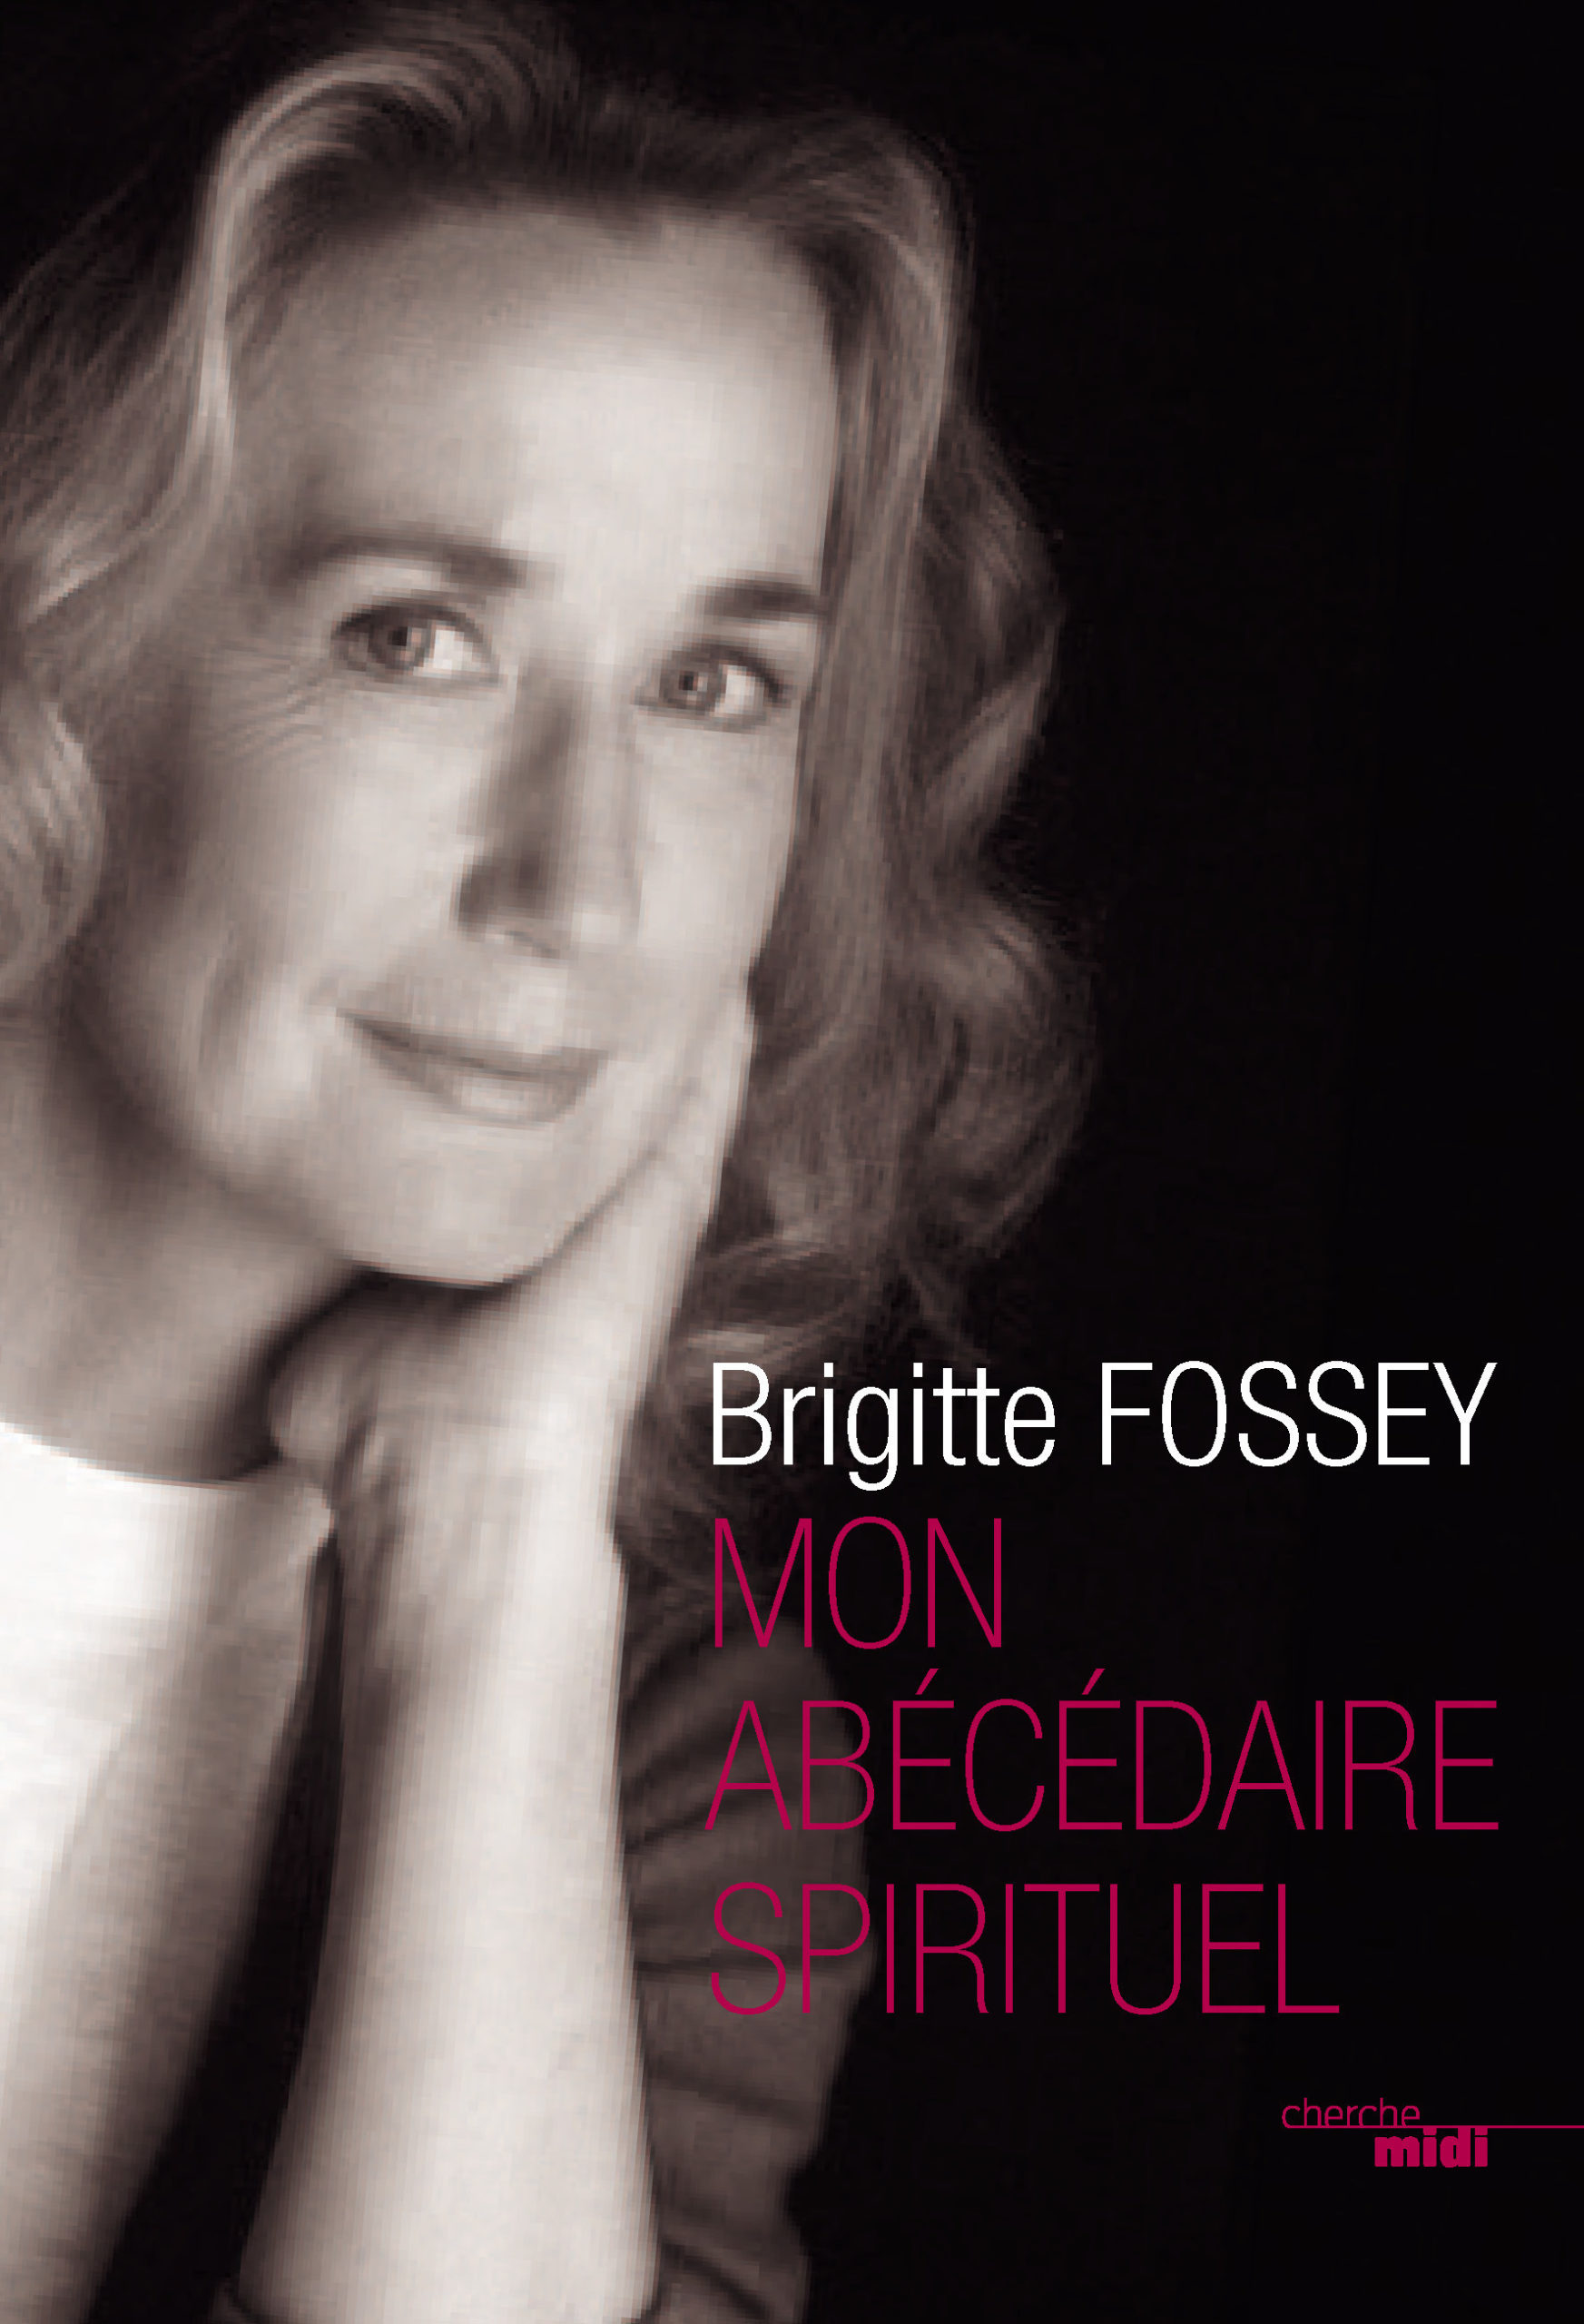 Interview Brigitte Fossey – Agir par amour